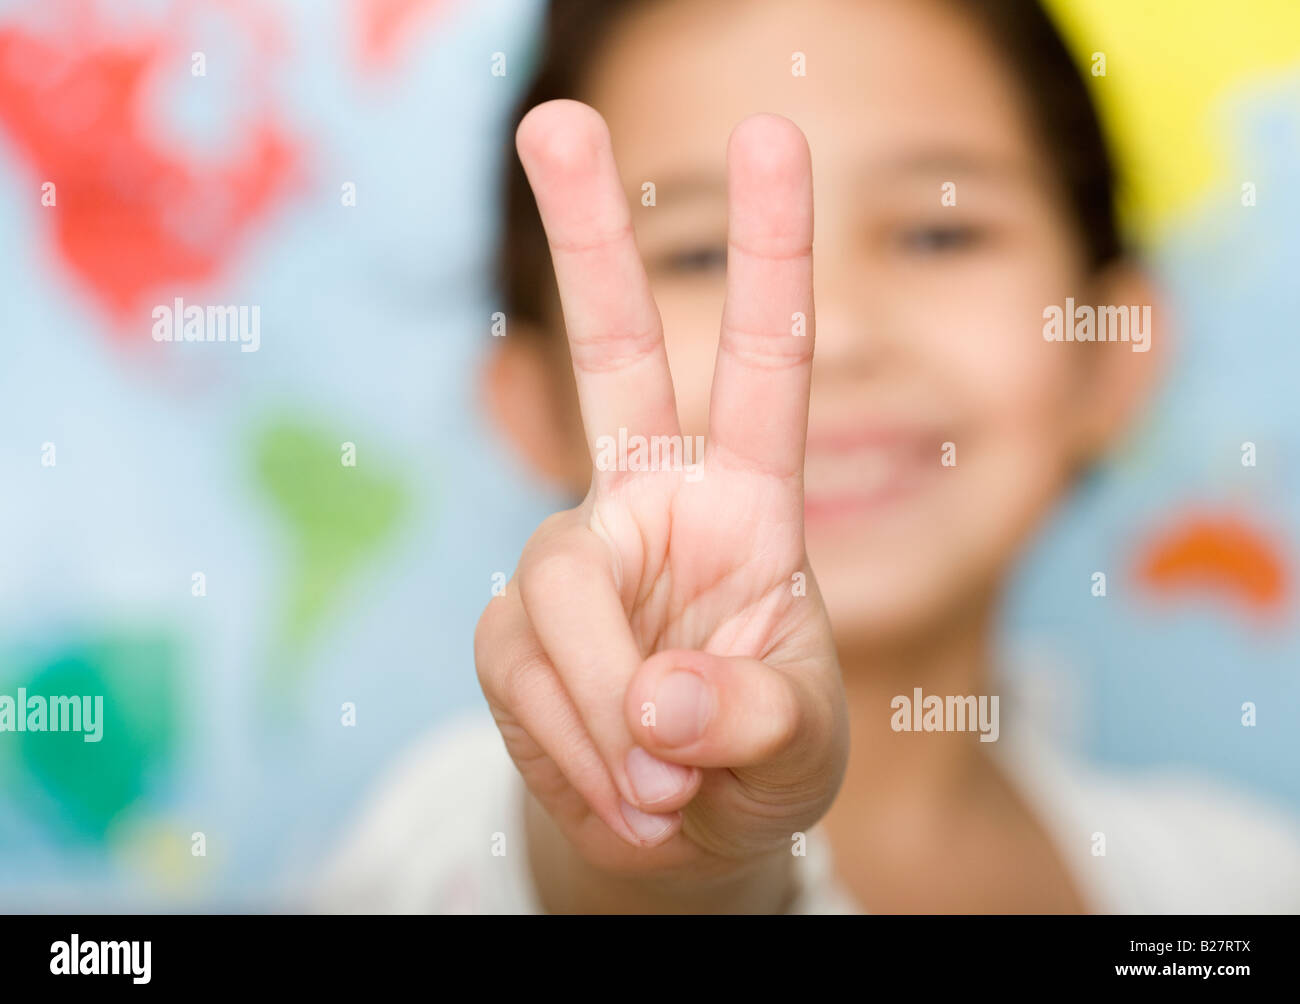 Child making peace sign hand gesture - Stock Image